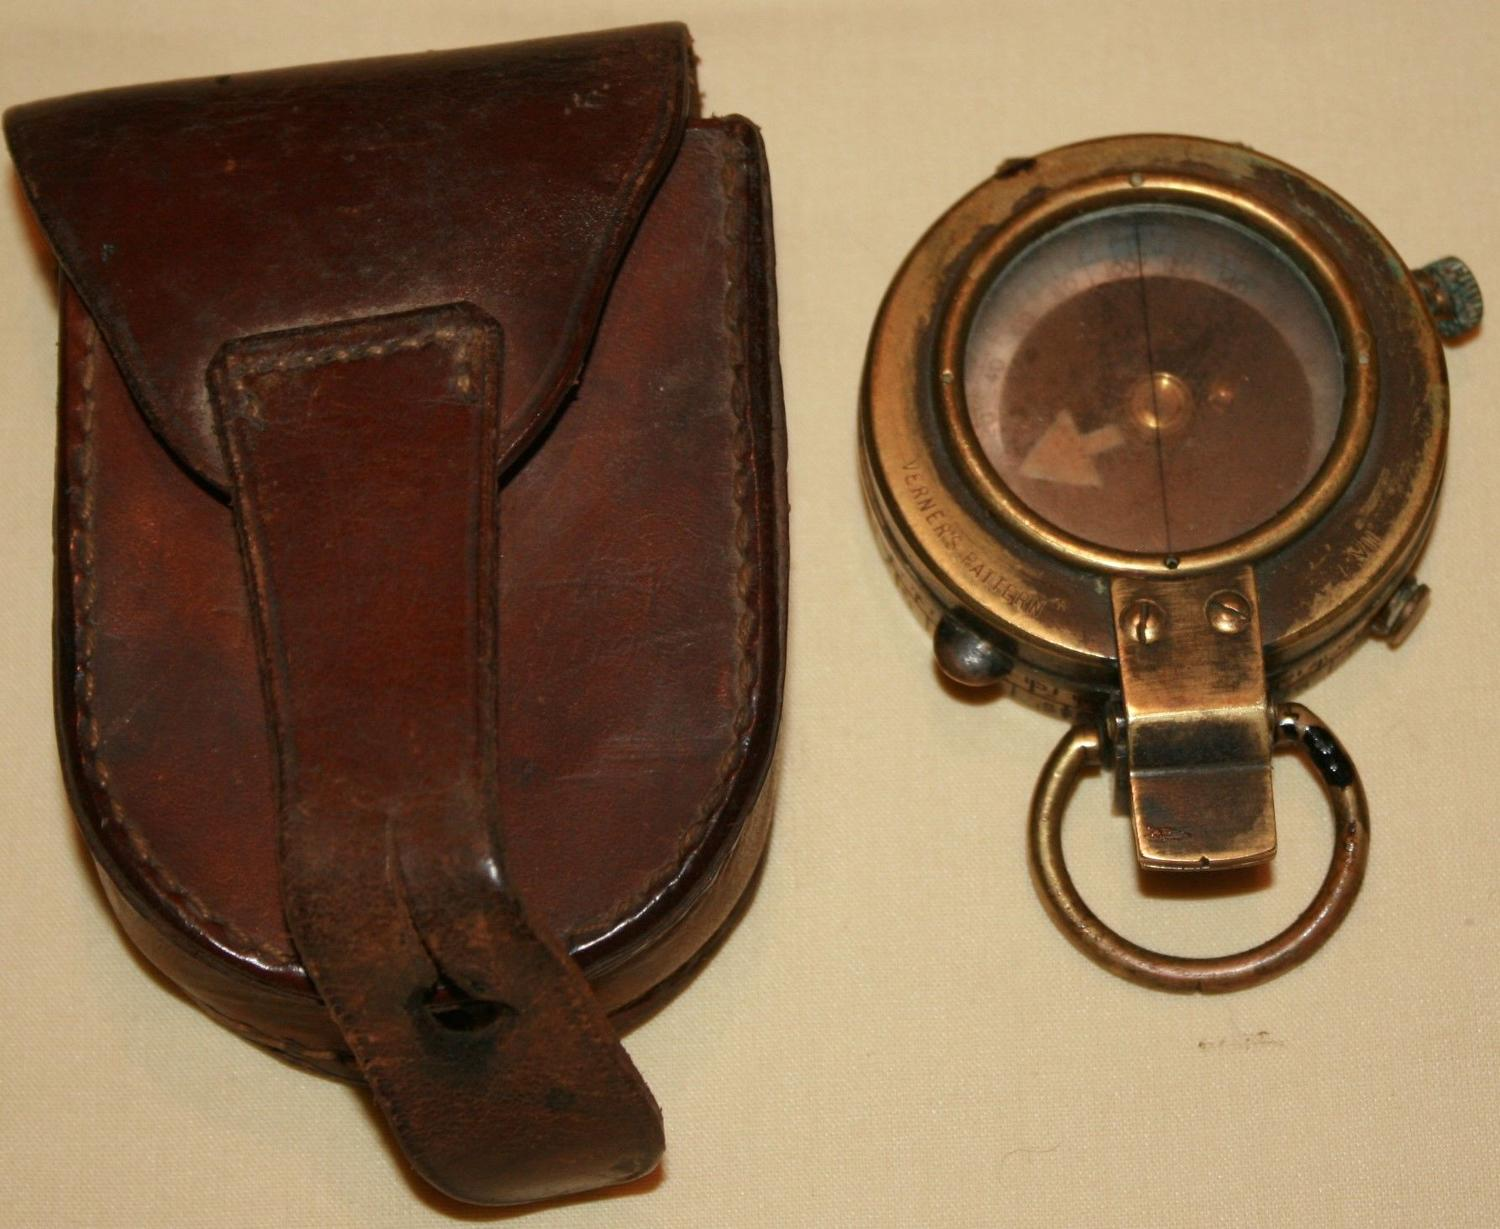 A BRITISH WWI 1917 DATED COMPASS